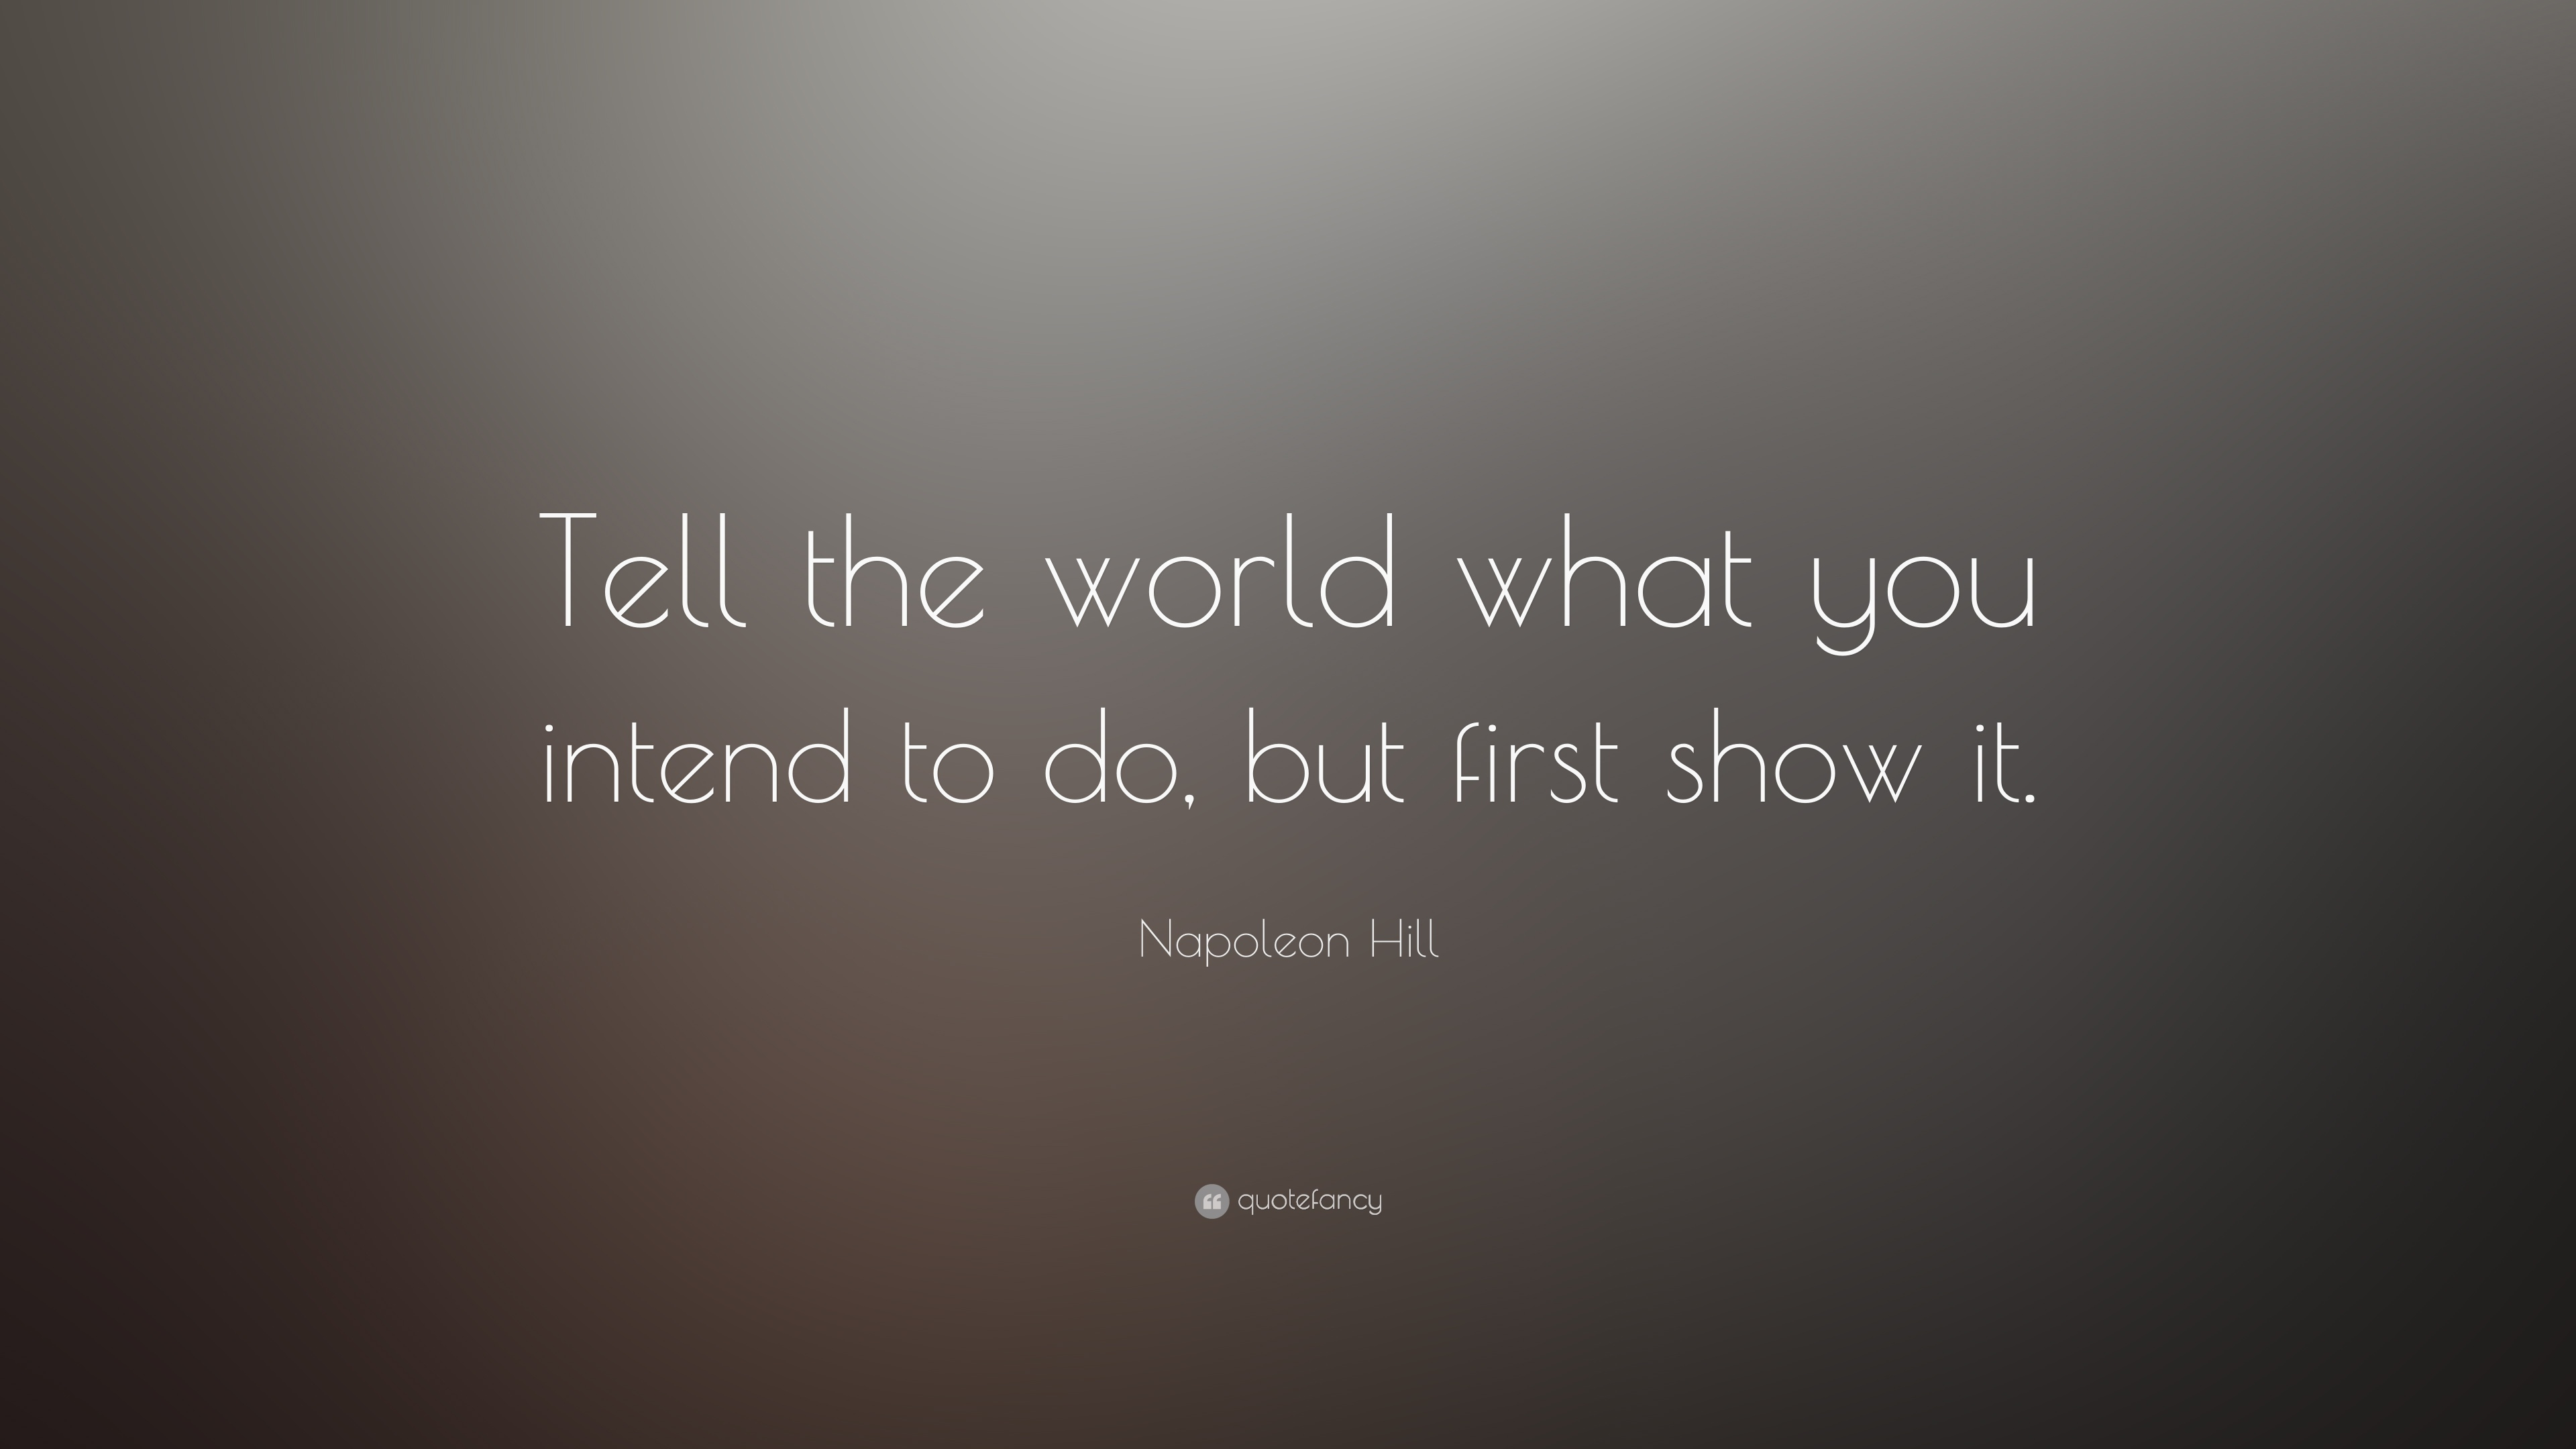 Business Quotes Wallpapers For Desktop Motivational Success Napoleon Hill Quotes 25 Wallpapers Quotefancy